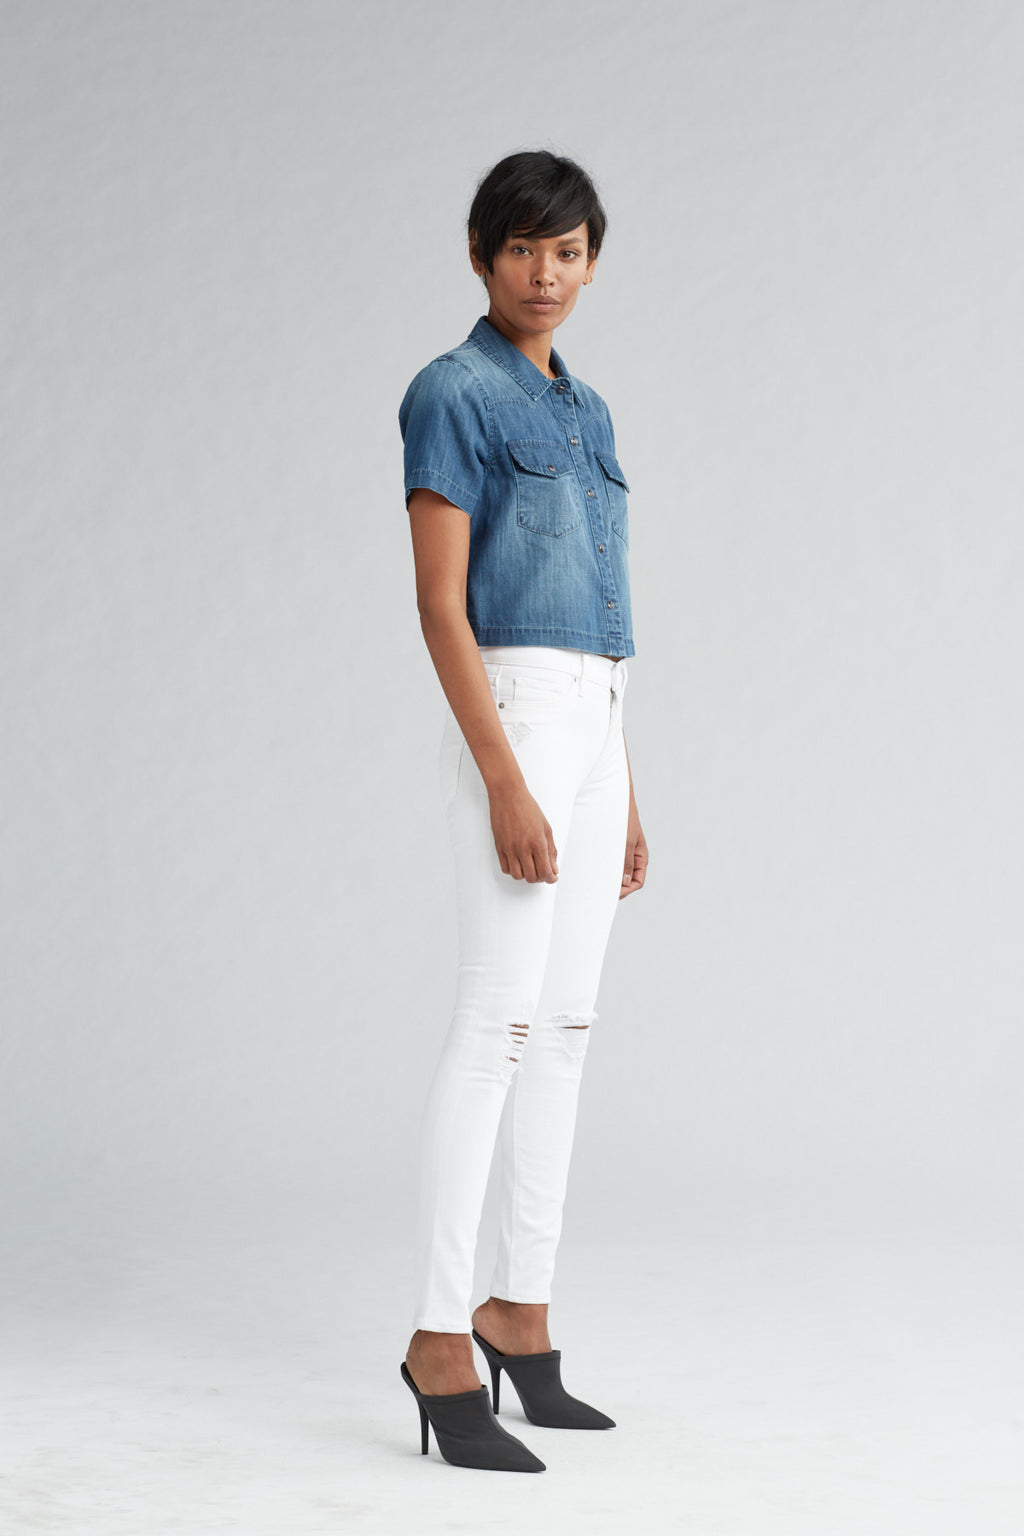 WESTERN SHIRT - BREEZE - Image 2